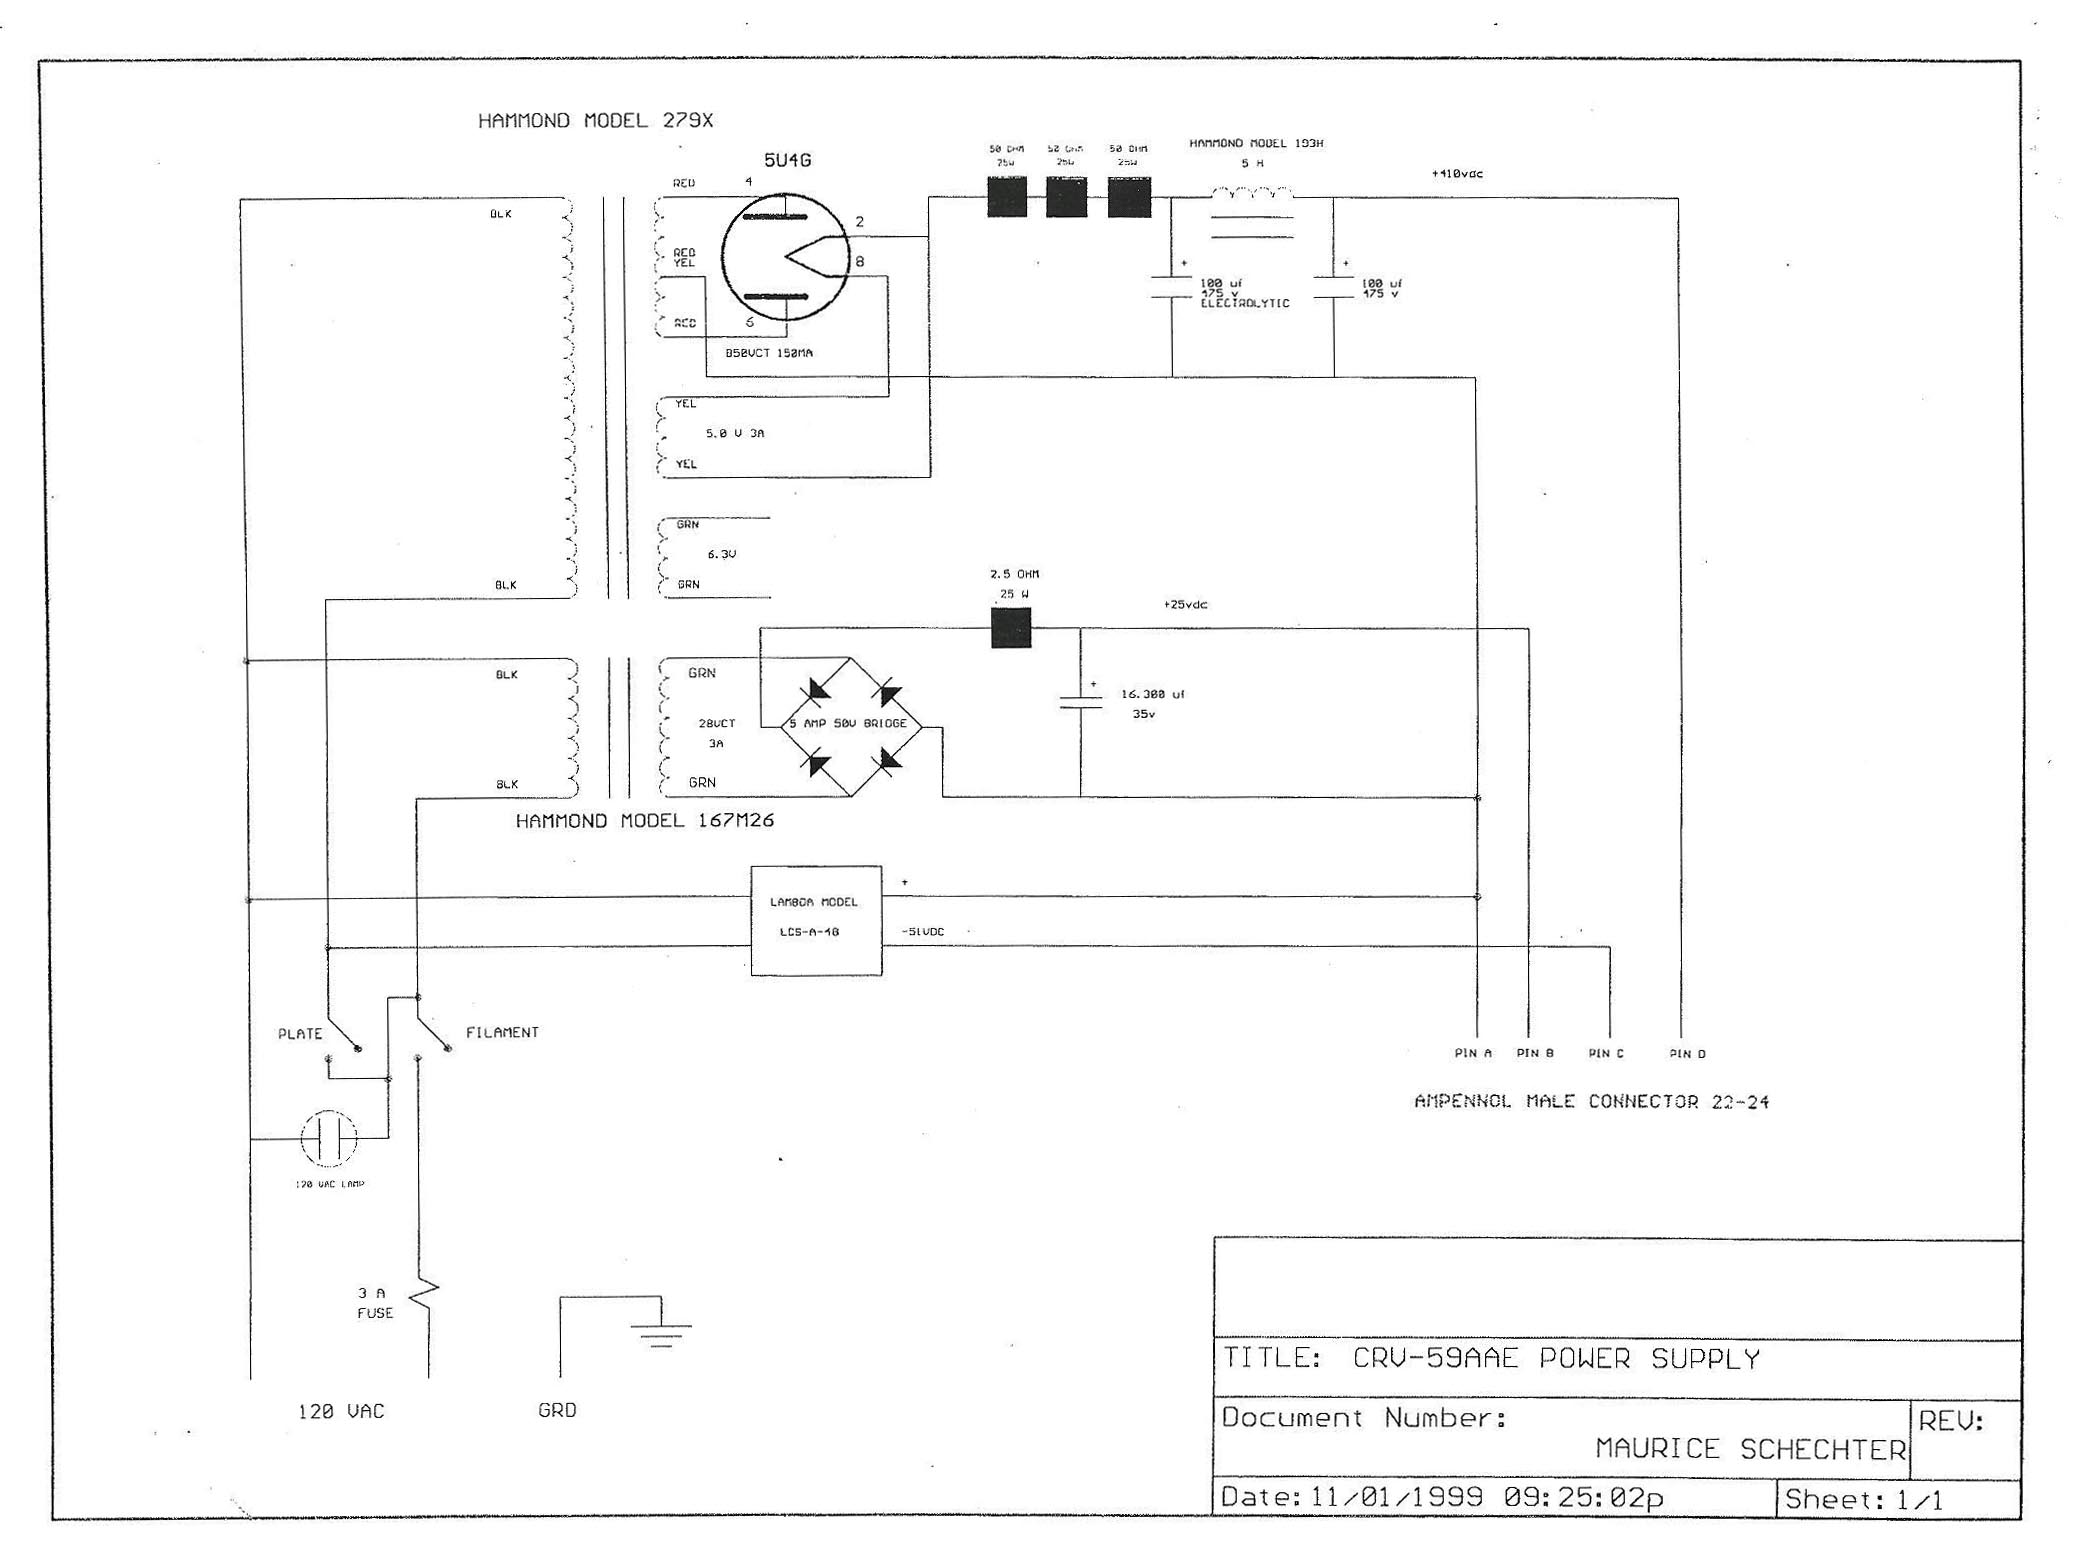 Crv 59 Military Camera 24 Vdc Power Supply Schematic